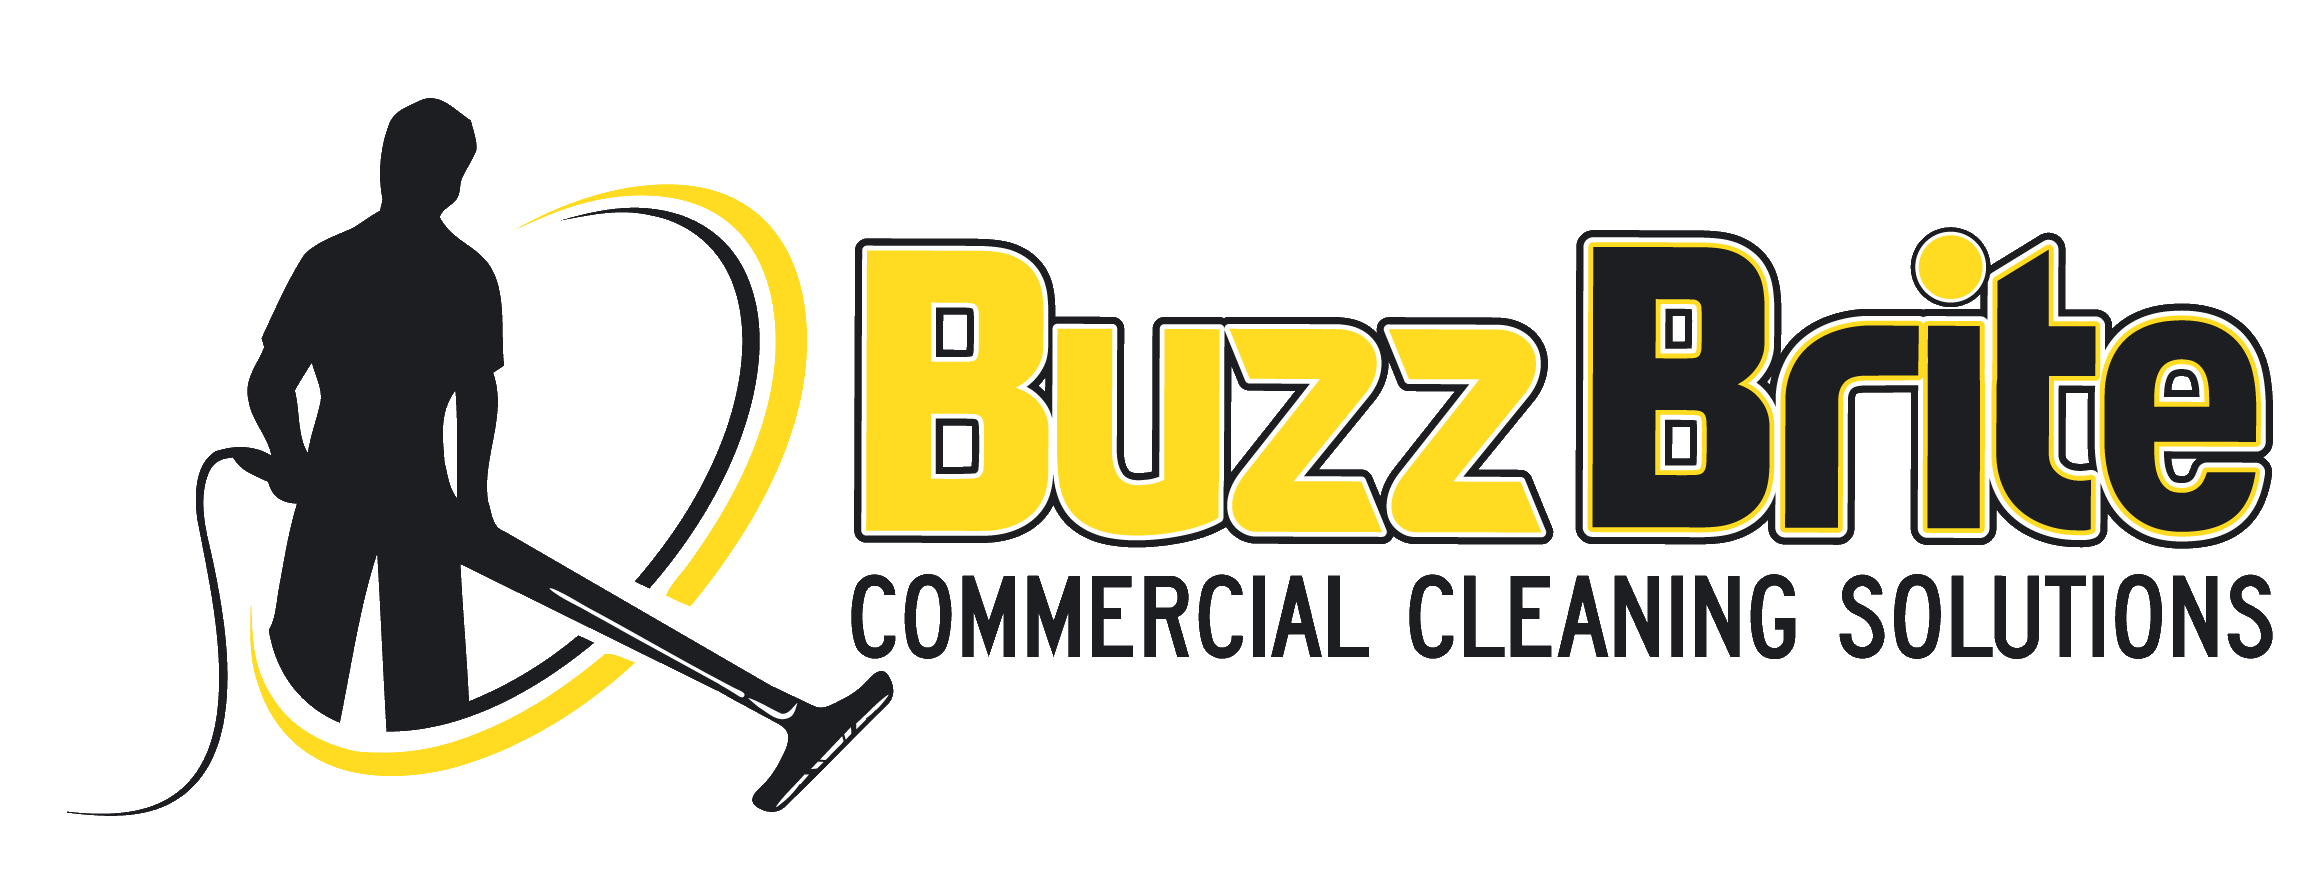 Buzz Brite Janitorial Services